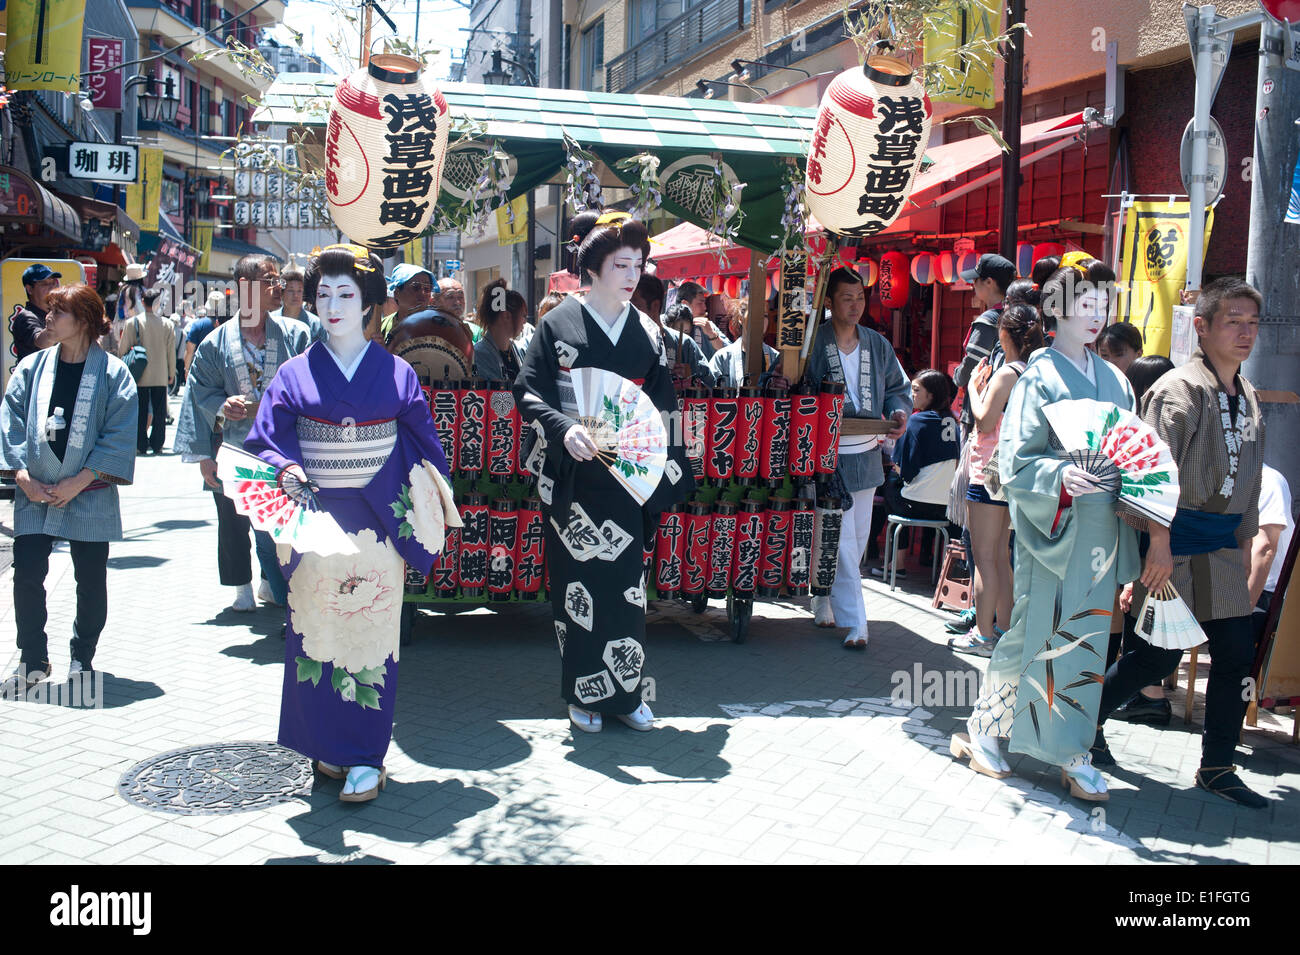 Tokyo, Japan - May 2014 - People attend to see carrying portable Shinto Temples (Mikoshi) during the Sanja Matsuri in Asakusa - Stock Image